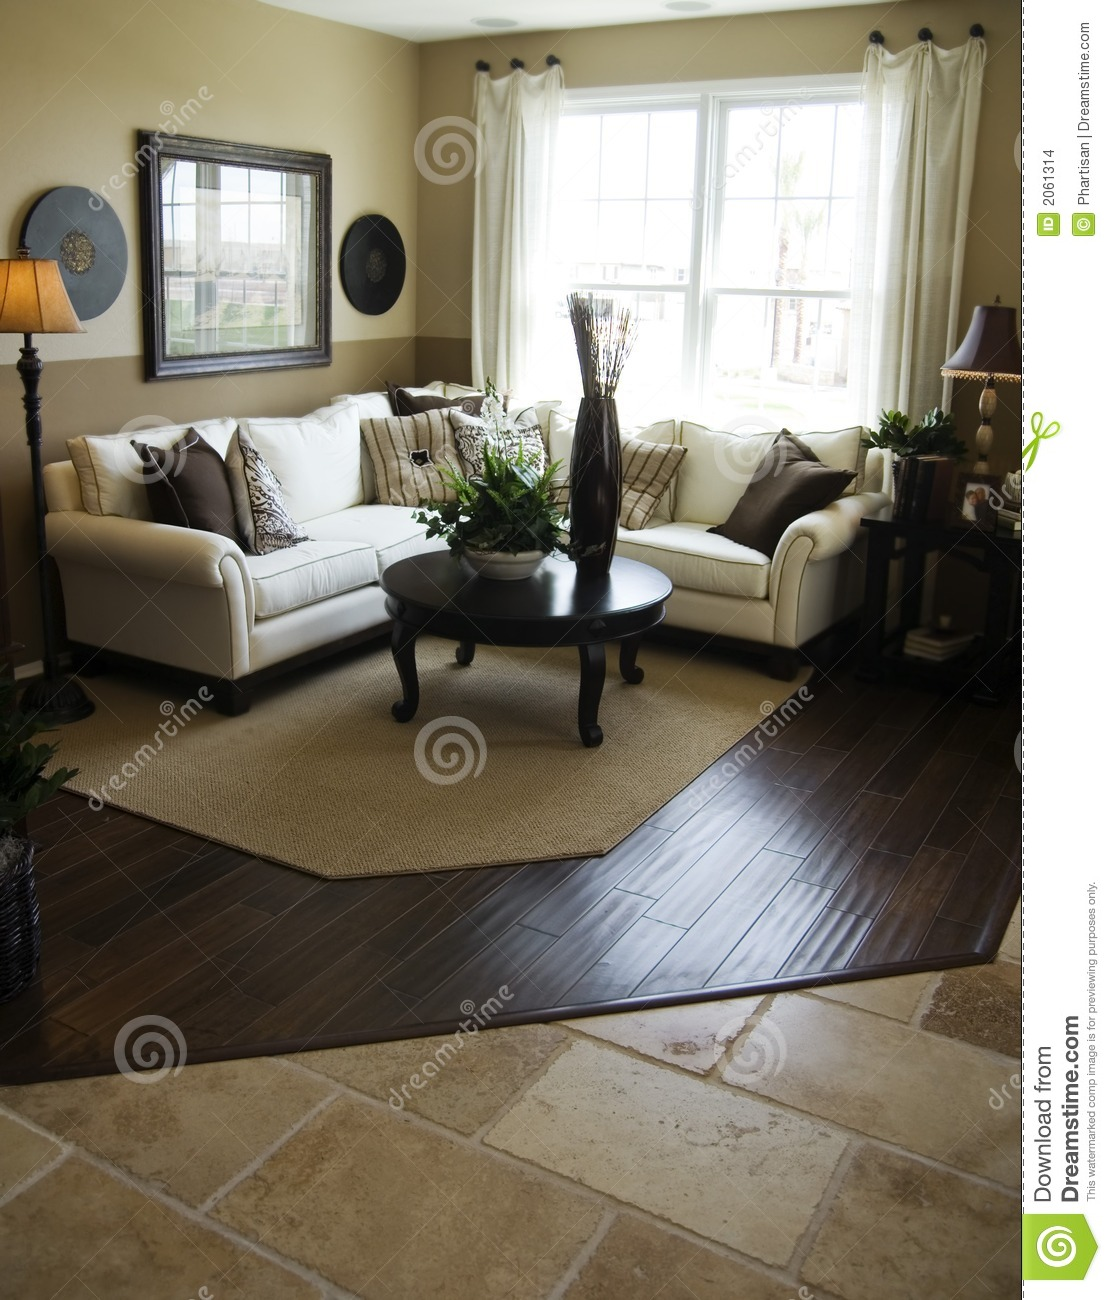 Model Home Interior Design Stock Images Image 2061314